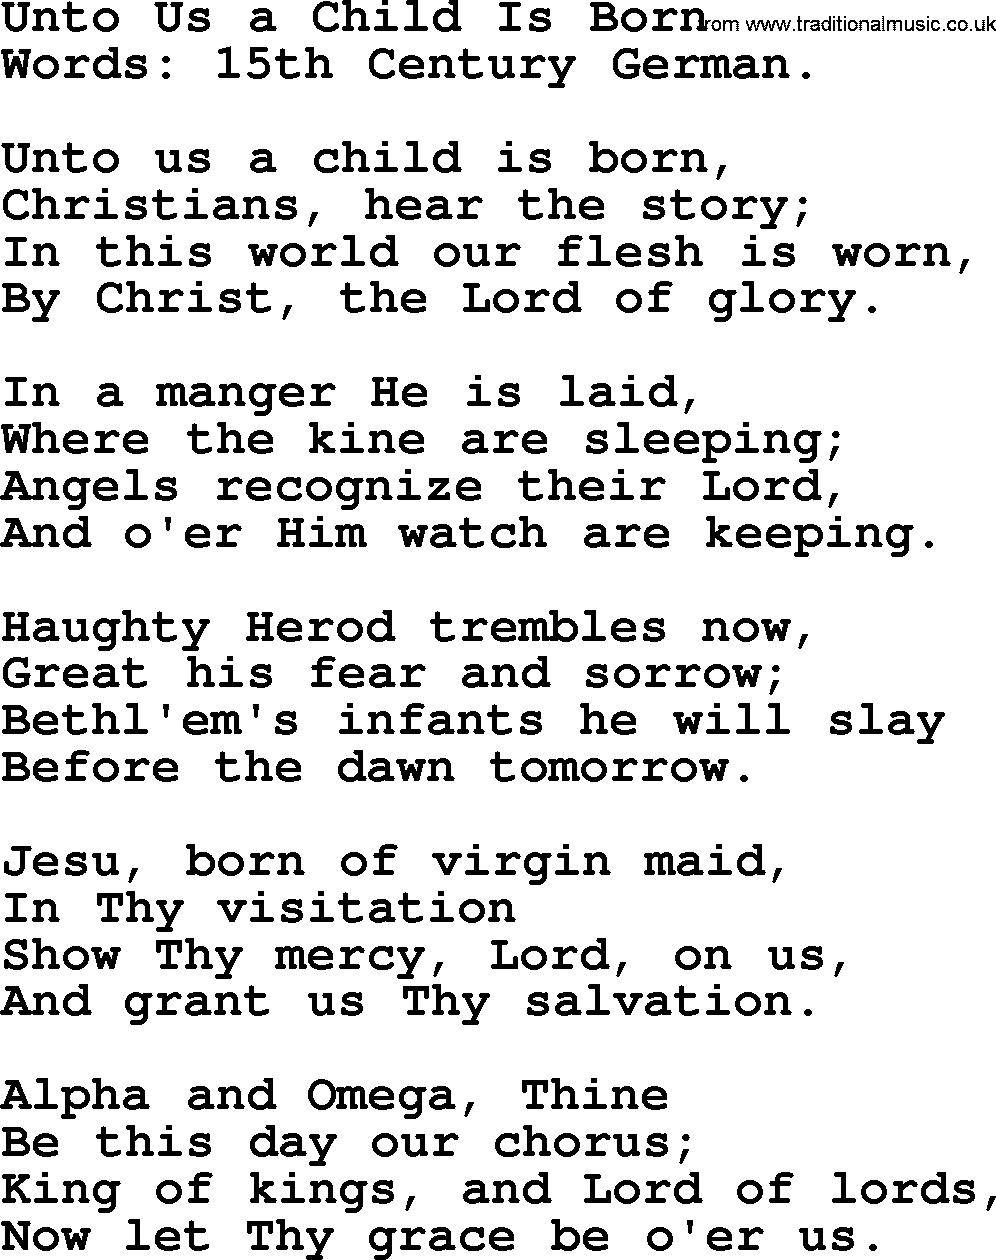 Christmas Hymns, Carols and Songs, title: Unto Us A Child Is Born - complete lyrics, and PDF